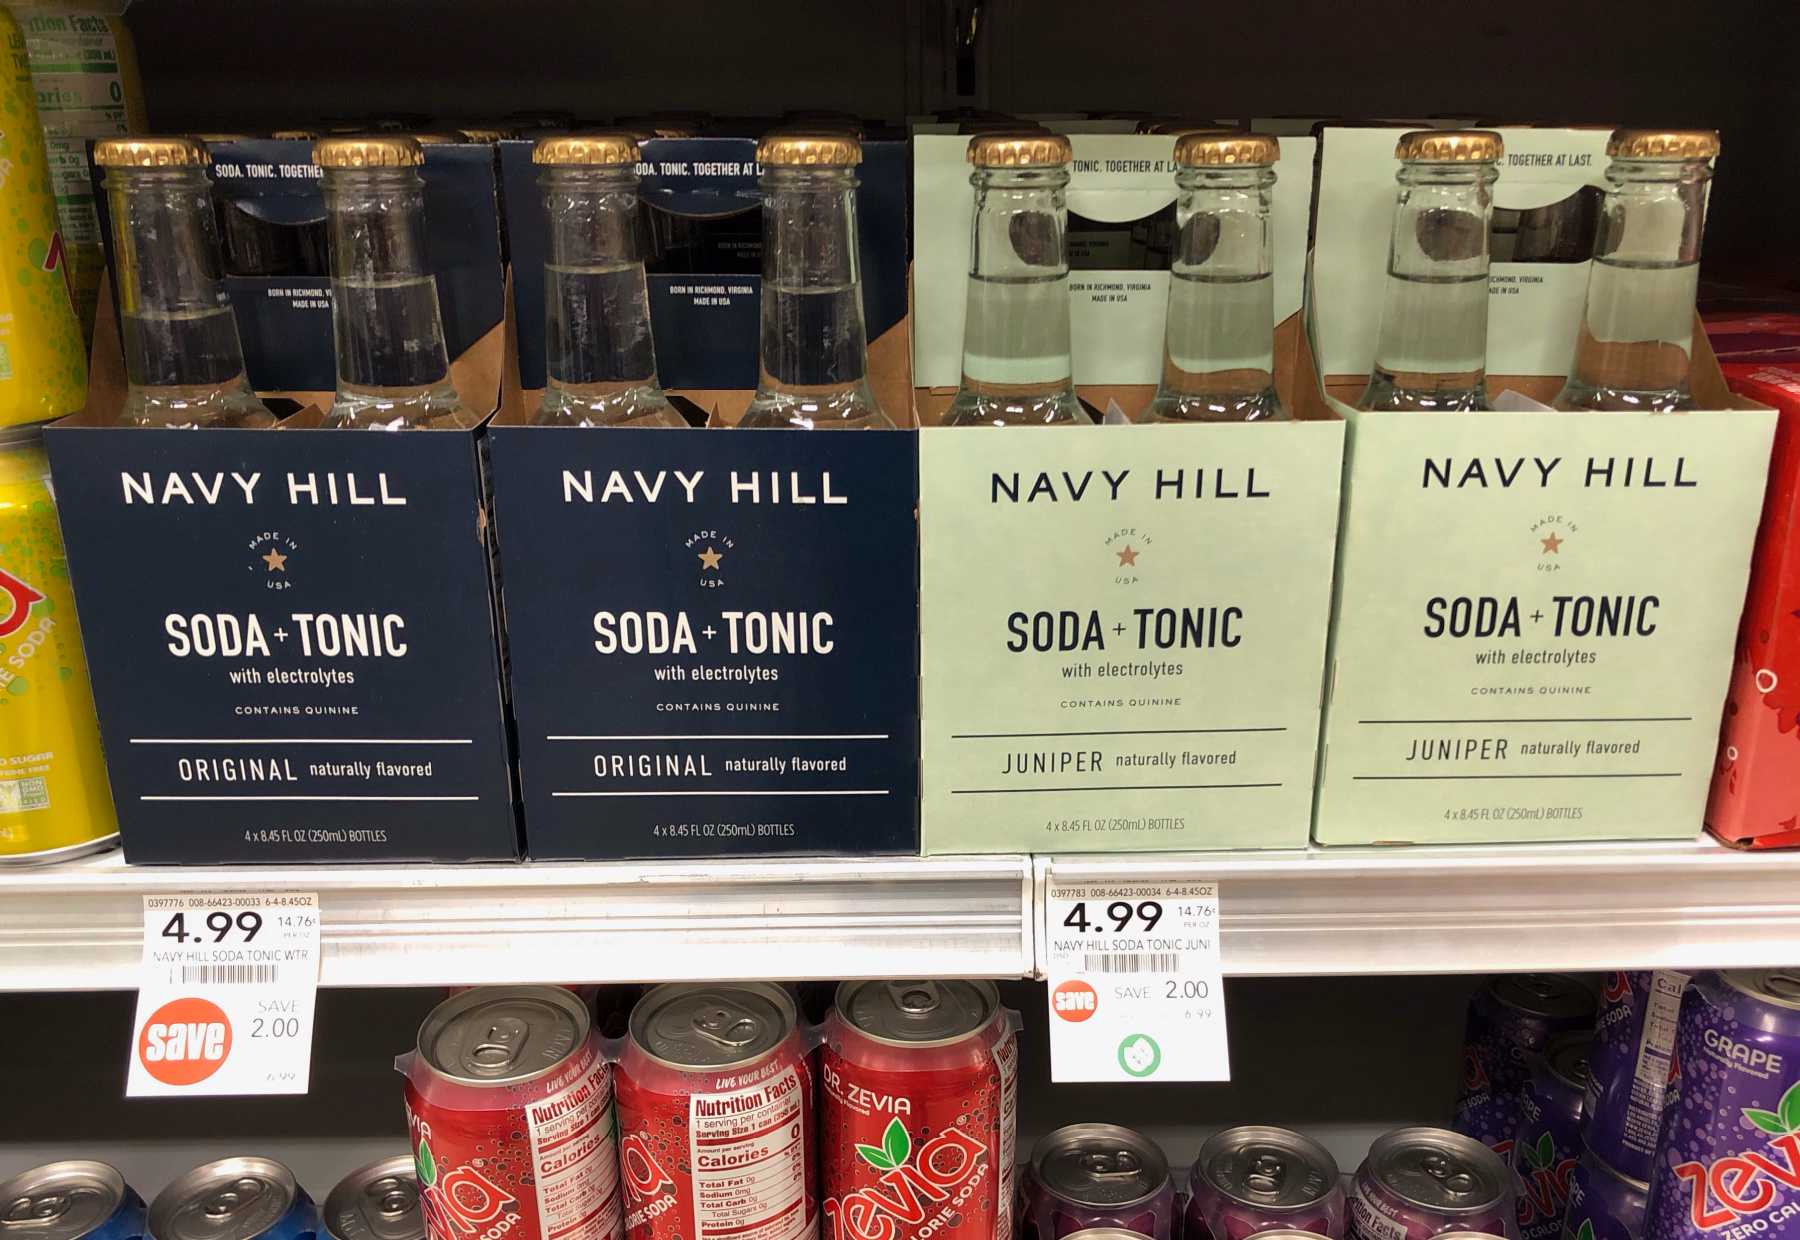 Huge Discount On Navy Hill Mixers At Publix - Save On A Delicious Soda/Tonic Blend! on I Heart Publix